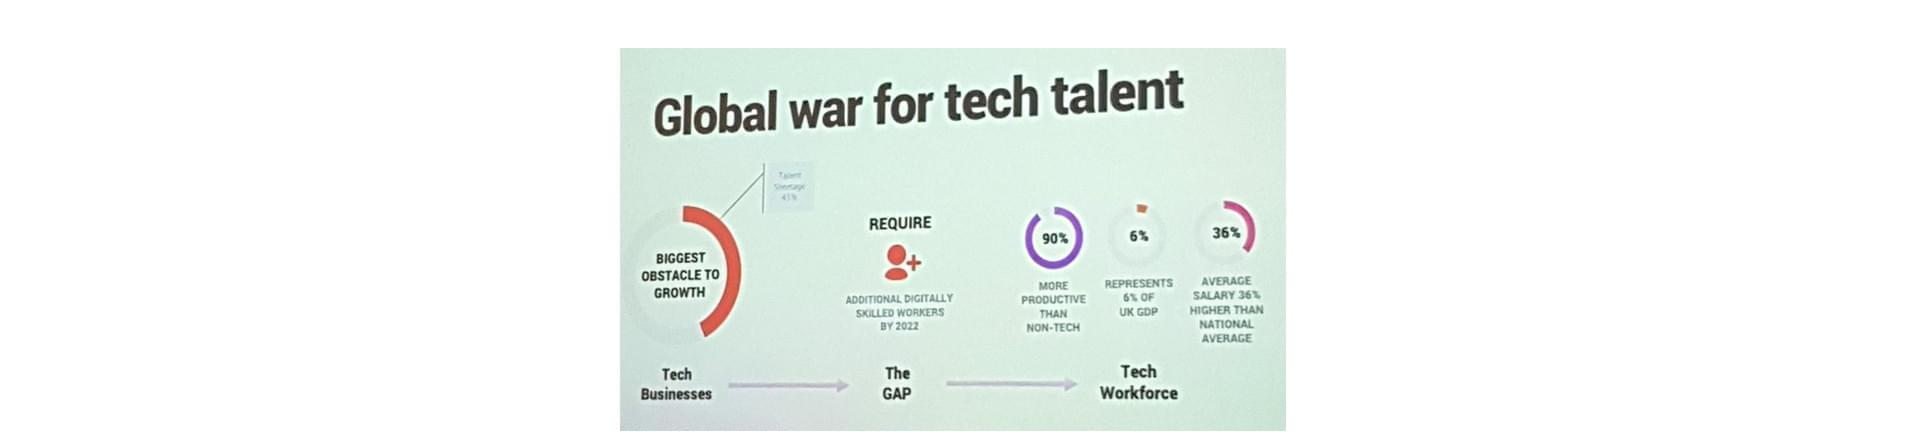 Photograph of slides at the Diversity in Tech event with words Global War for Tech Talent. On the far left a circular chart stating Biggest Obstacle to Growth with arrow stating 41% talent shortage. Centre left words: Require with an image of a stick person and plus sign beside it. Words underneath read Additional digitally skilled worker by 2022. Moving further along there is another circular diagram with 90% in the centre and words More productive than non-tech underneath. Next is another circular diagram with 9% in the middle and words Represent 6% of UK GDP underneath. Last circular diagram has 36% in the centre and words Average salary 36% higher than national average underneath. Underneath these diagrams are the words Tech Business, The Gap and Tech Workforce with arrows between them